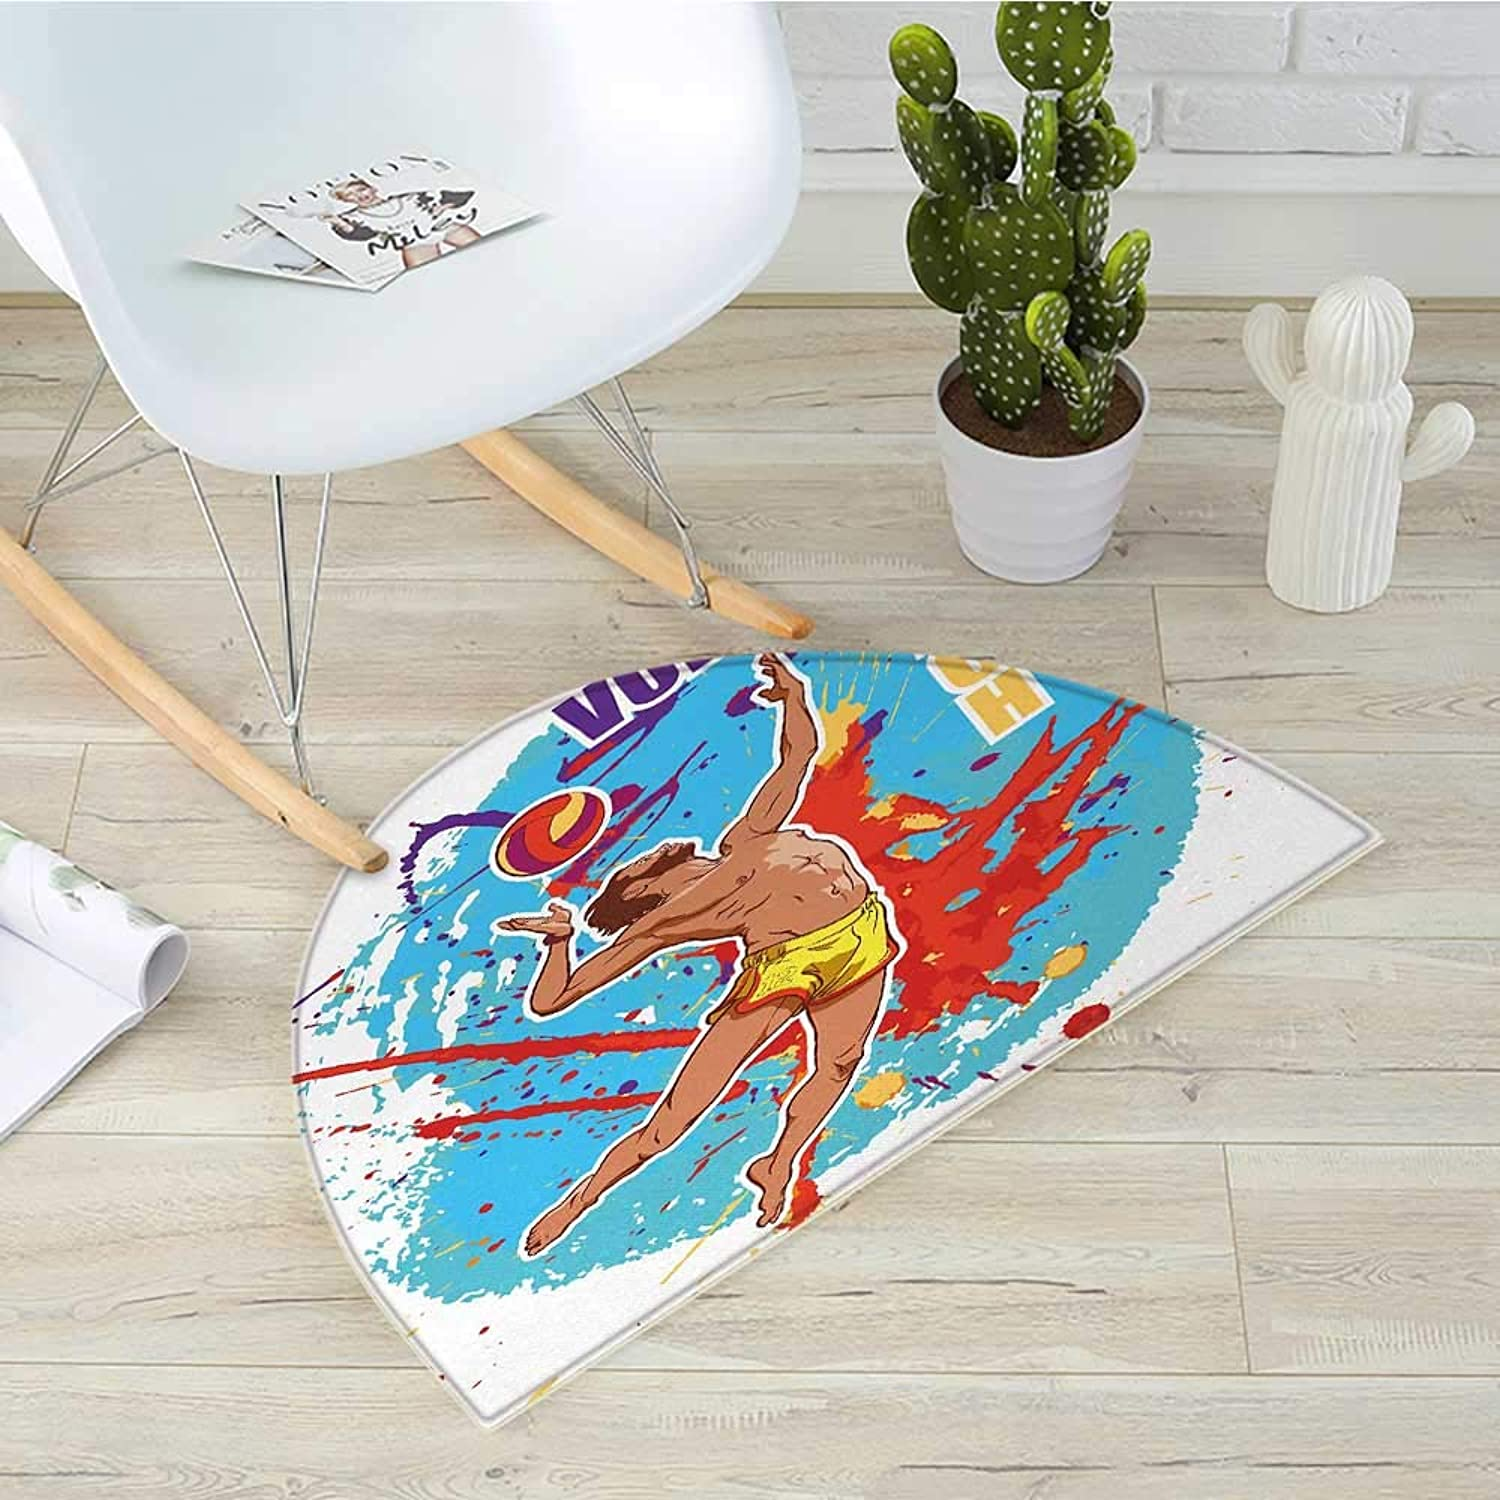 Beach Semicircle Doormat Vector Illustration of a Man Serving an Overhead Ball in Beach Volley Print Halfmoon doormats H 35.4  xD 53.1  Sky bluee and Red